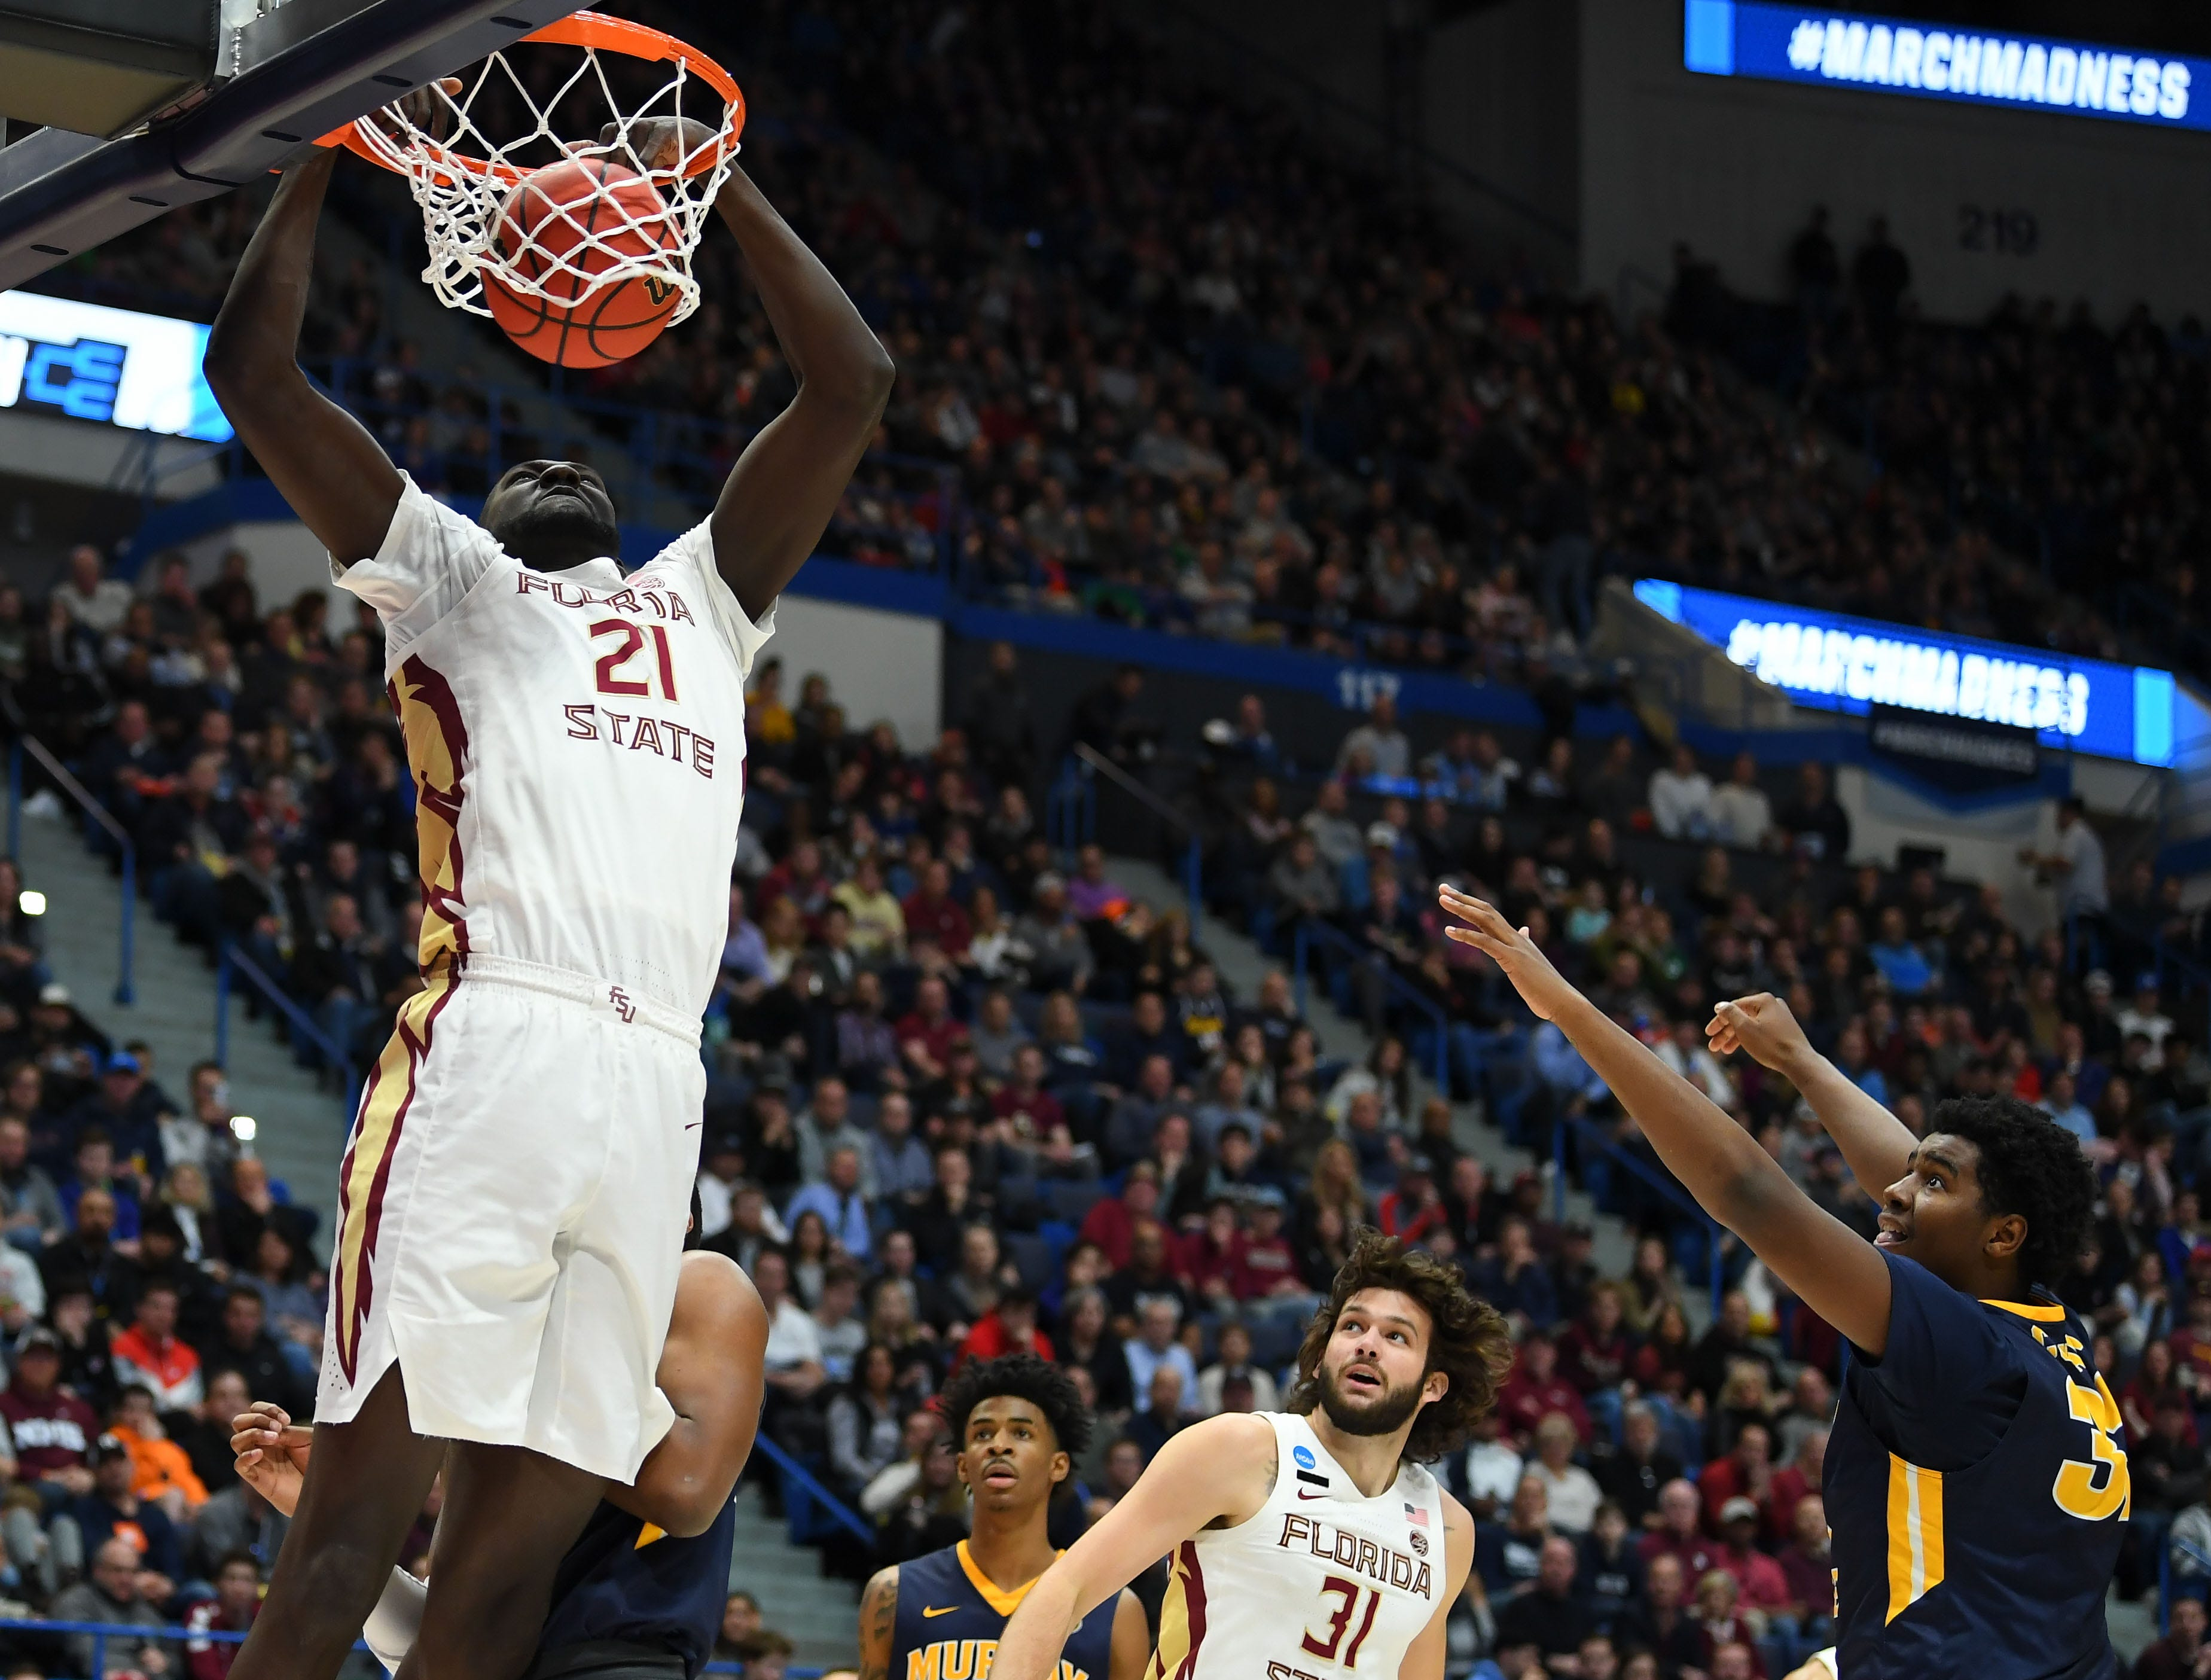 Mar 23, 2019; Hartford, CT, USA; Florida State Seminoles center Christ Koumadje (21) dunks and scores against the Murray State Racers during the first half of a game in the second round of the 2019 NCAA Tournament at XL Center. Mandatory Credit: Robert Deutsch-USA TODAY Sports